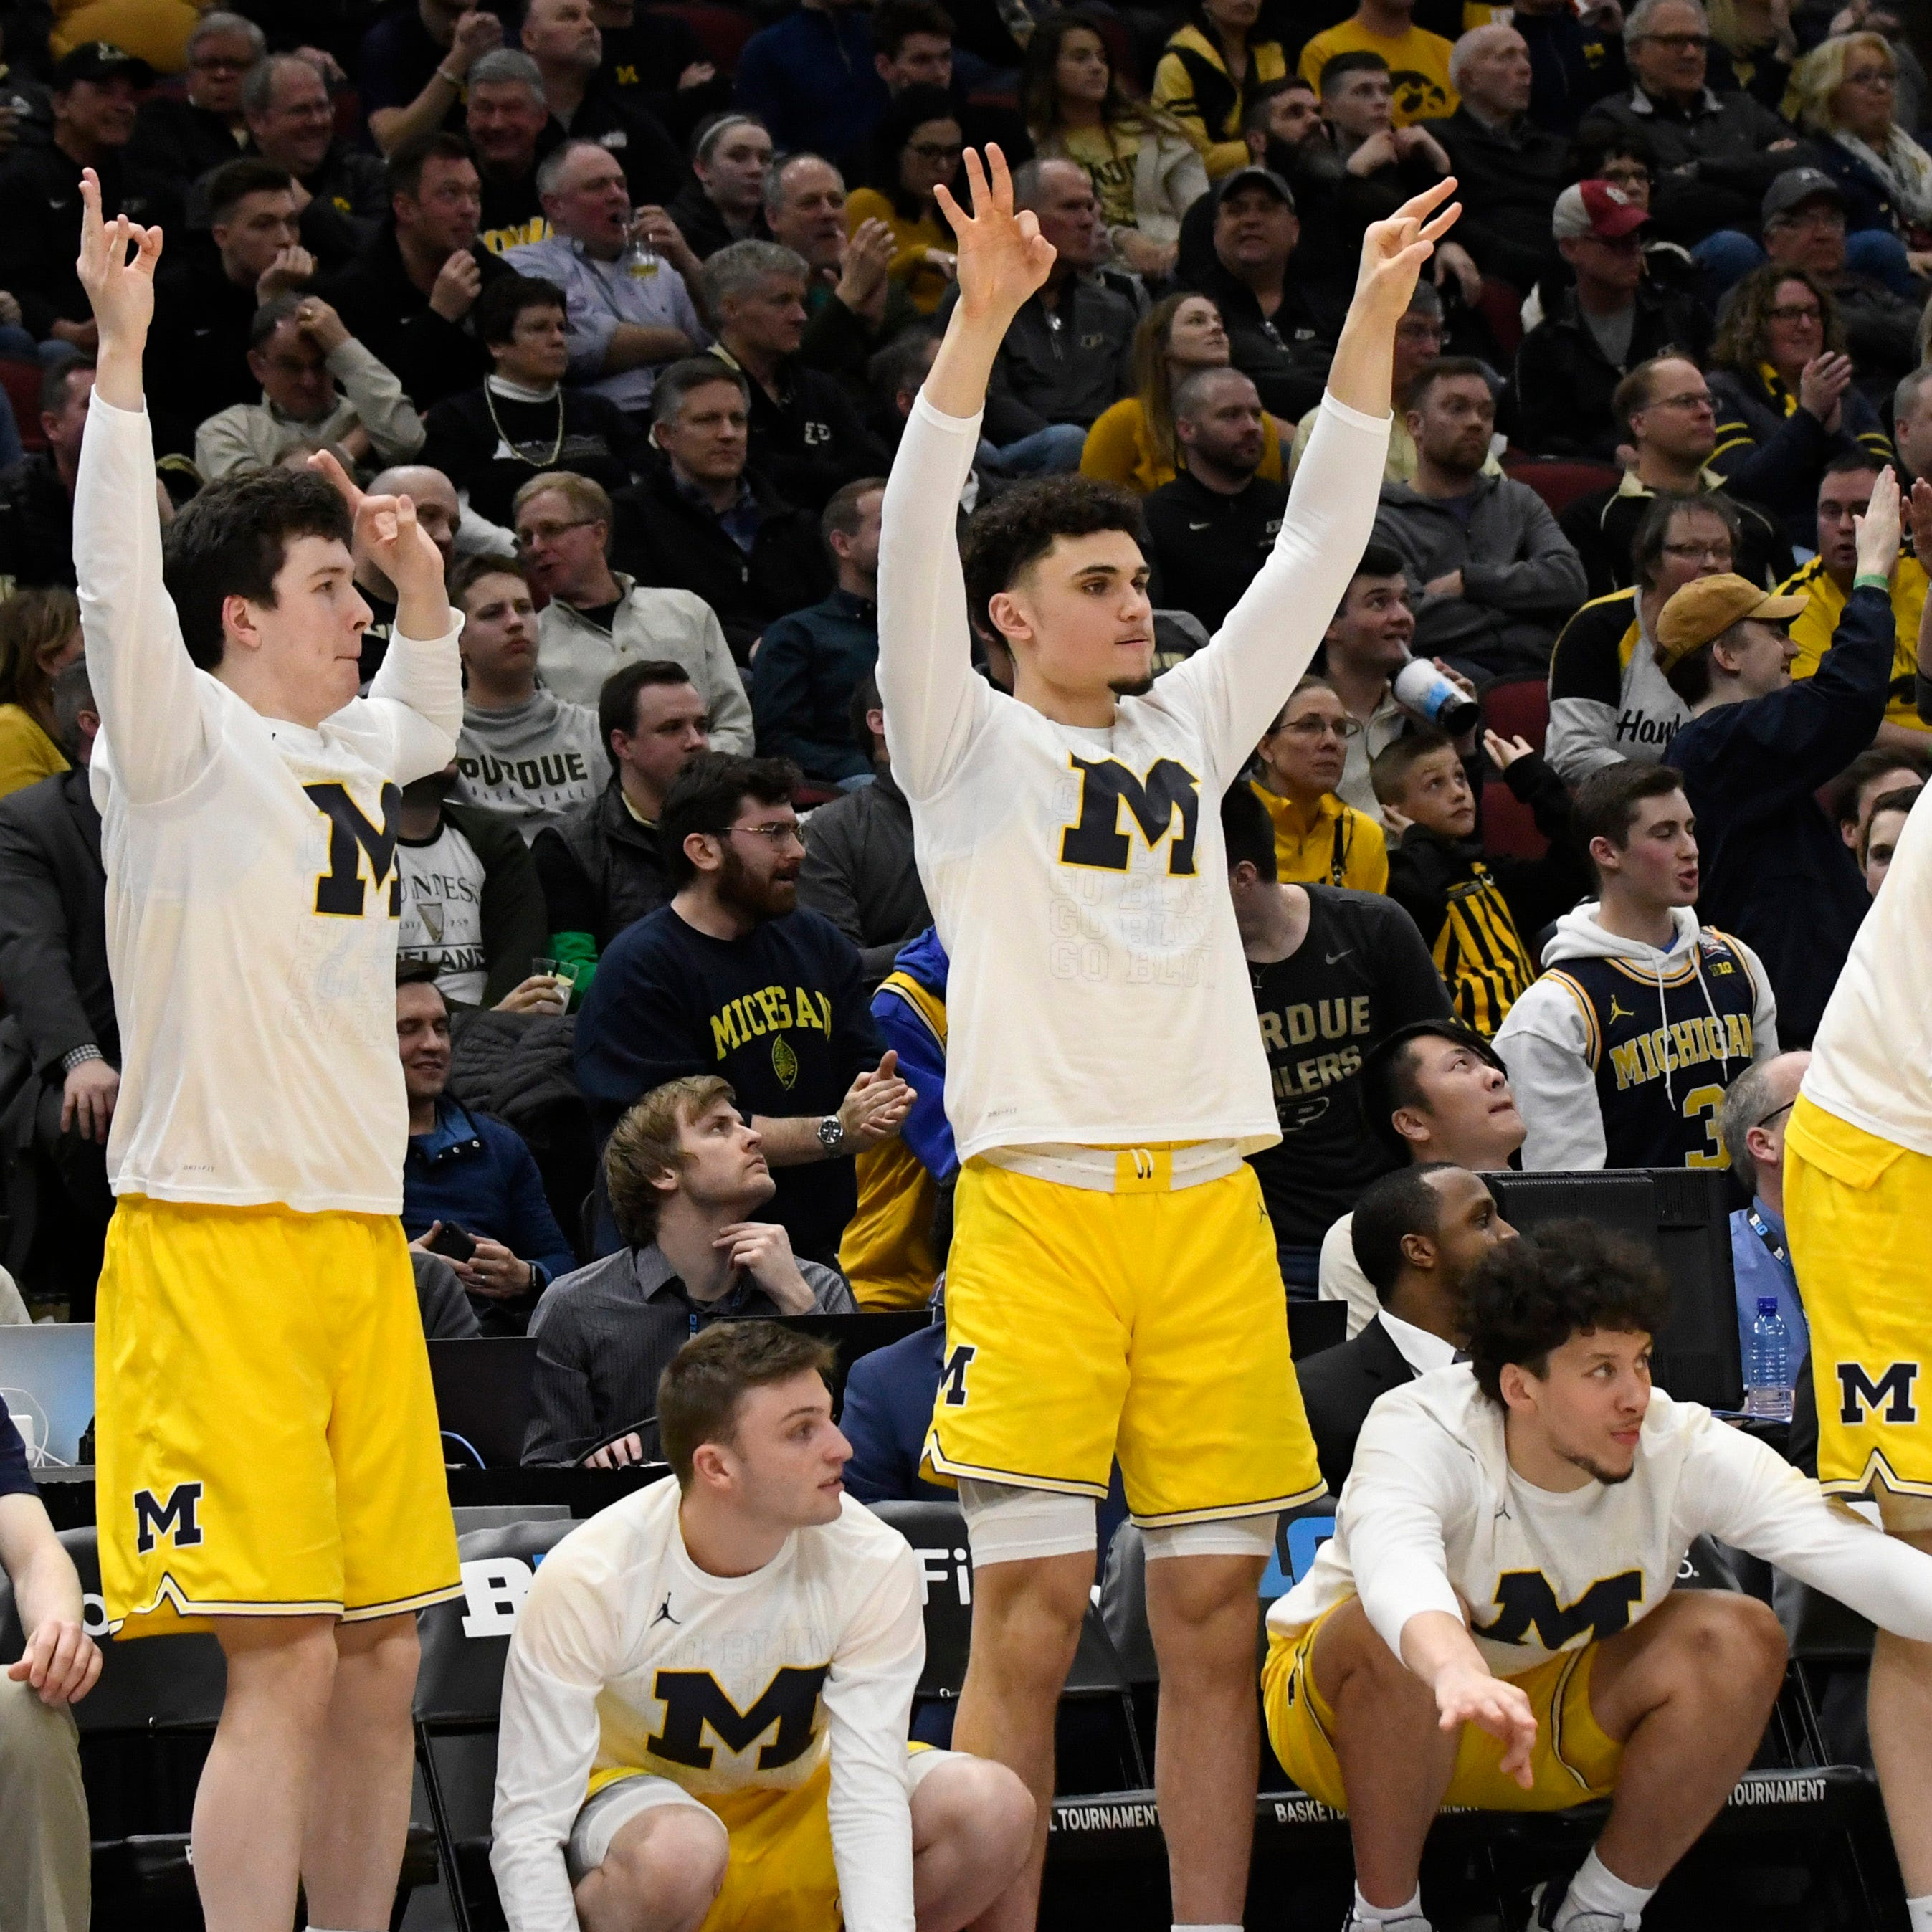 Michigan basketball shows it has wiped away pain of loss to MSU